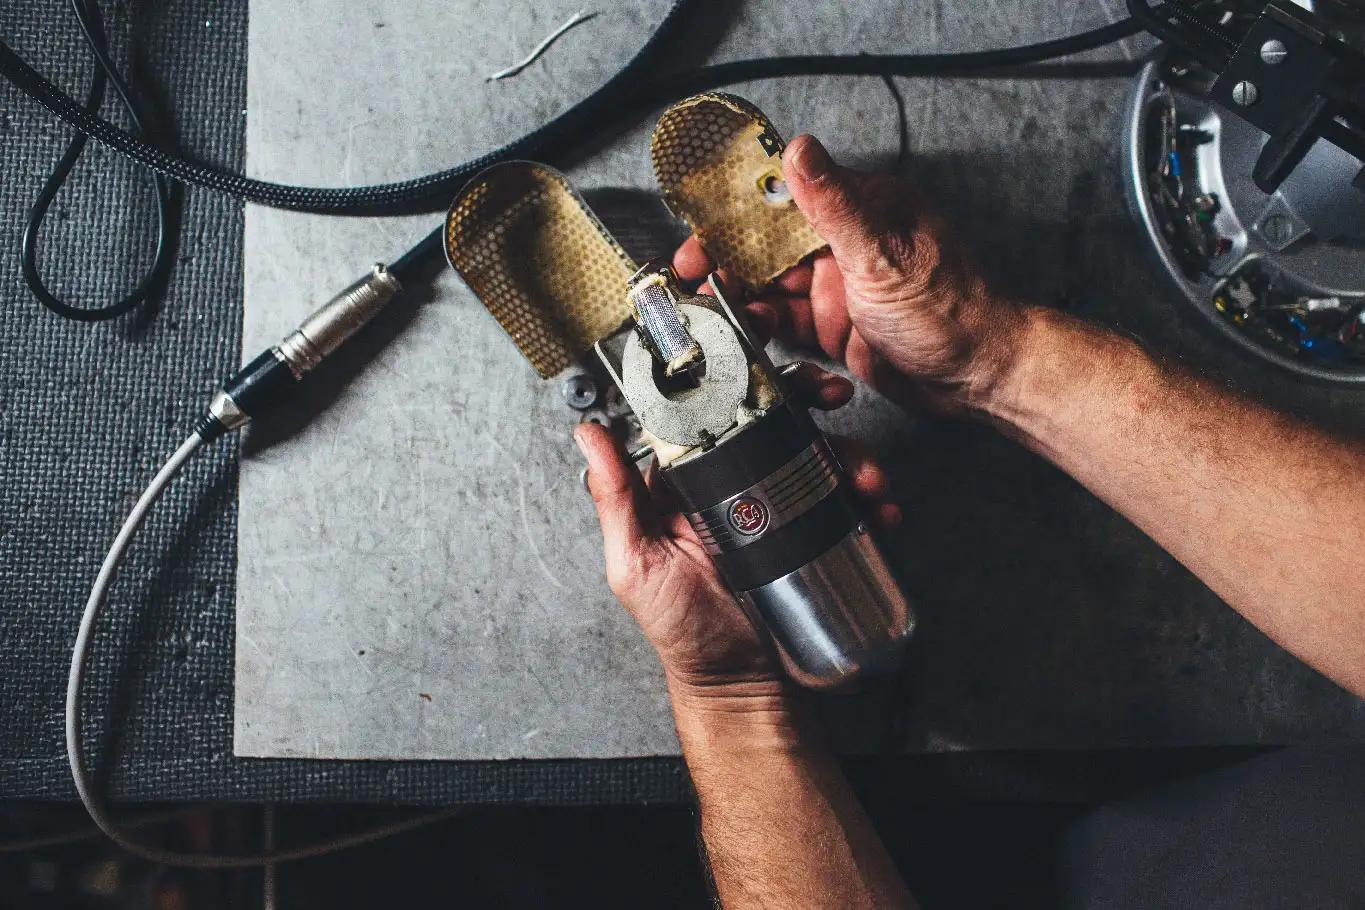 A vintage RCA 77 microphone gets repaired